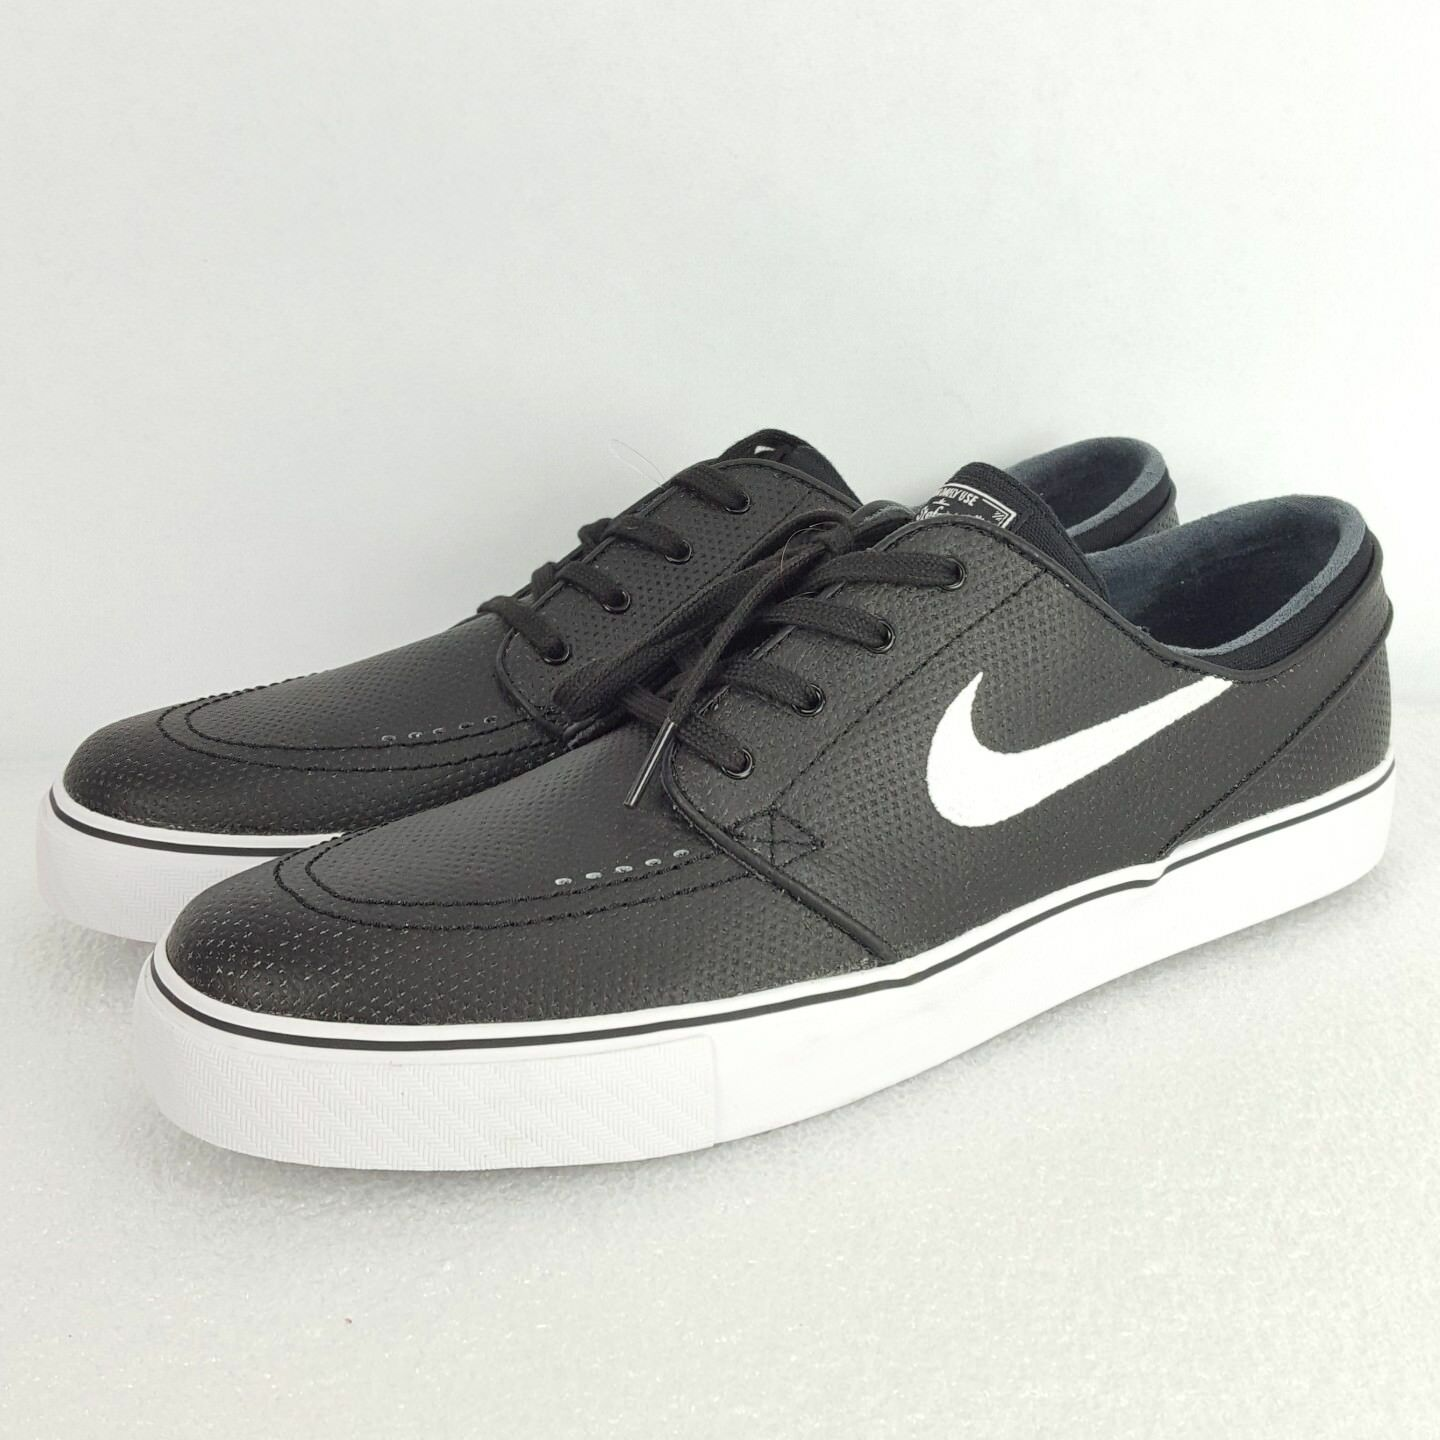 Nike Mens SB Portmore Canvas Skateboarding Shoes 723874-001 Sz 12 Black White Comfortable and good-looking